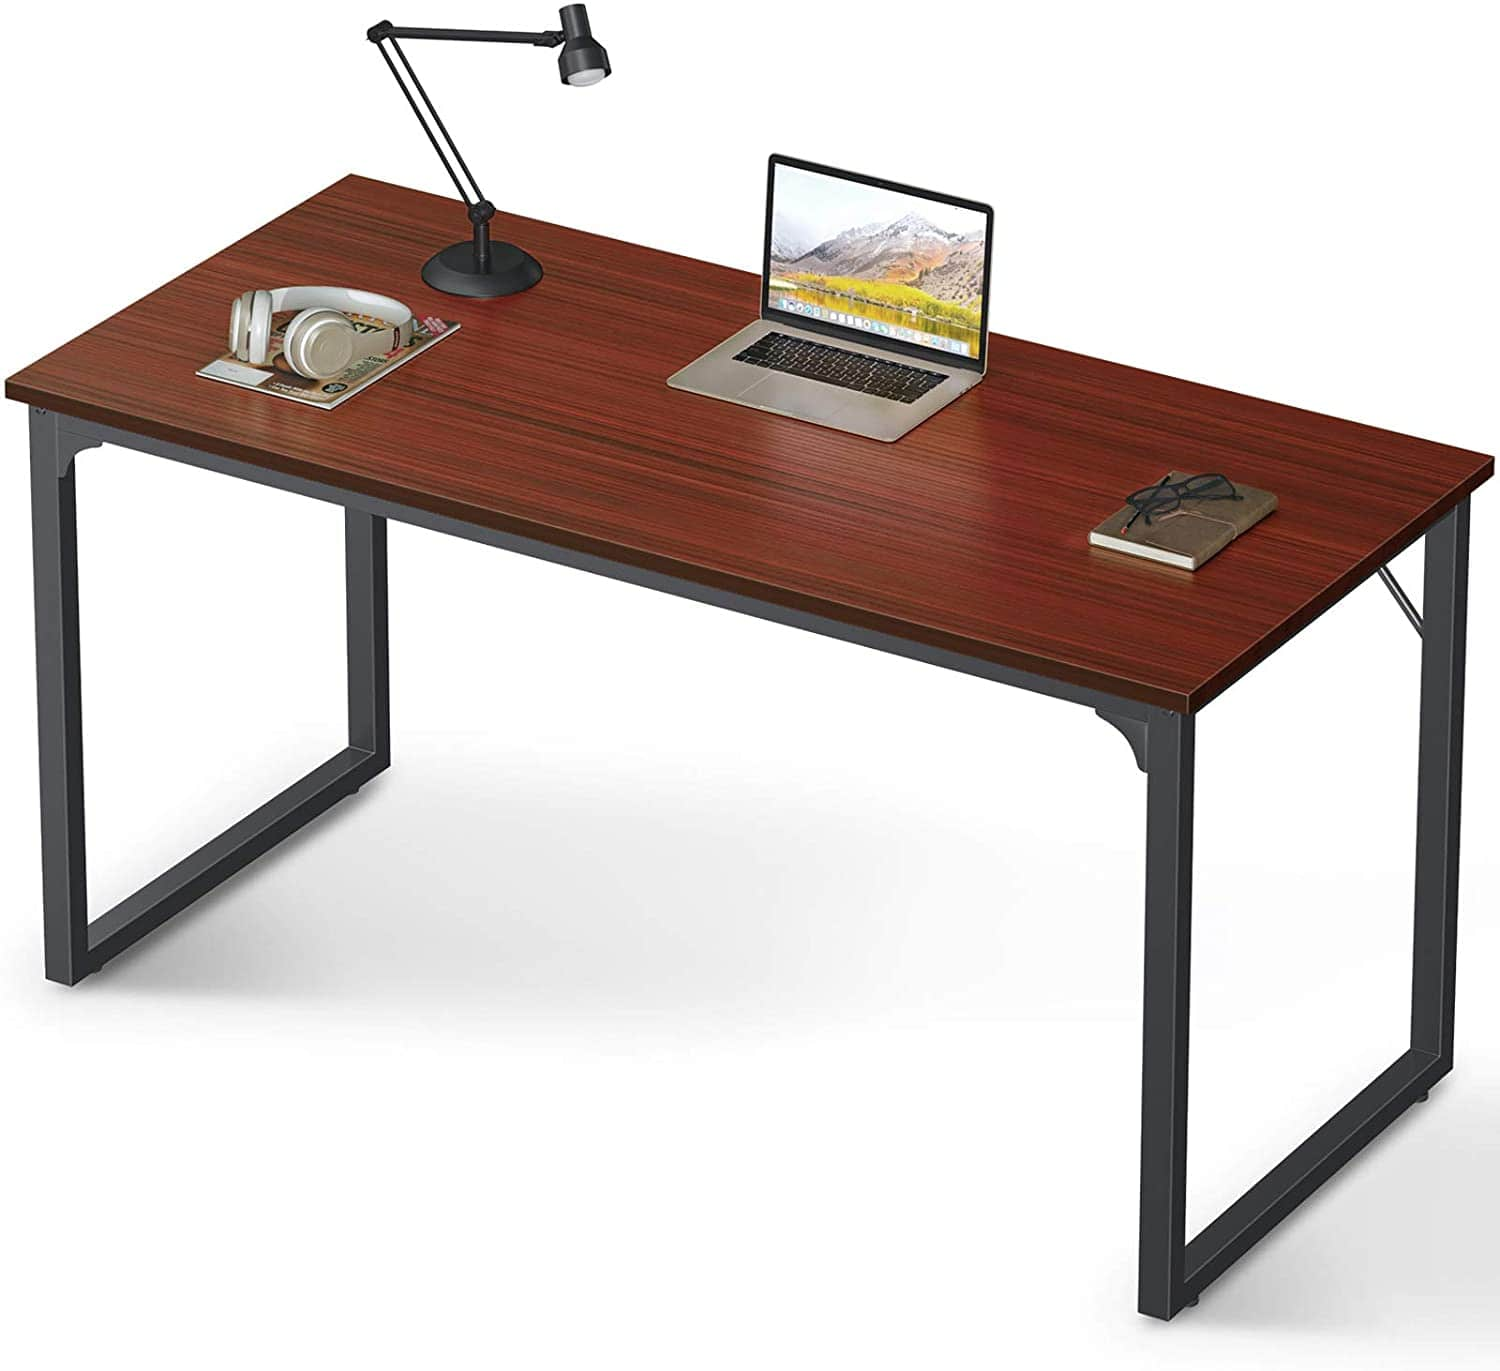 "Coleshome 55"" Computer Desk $69.99@Amazon"